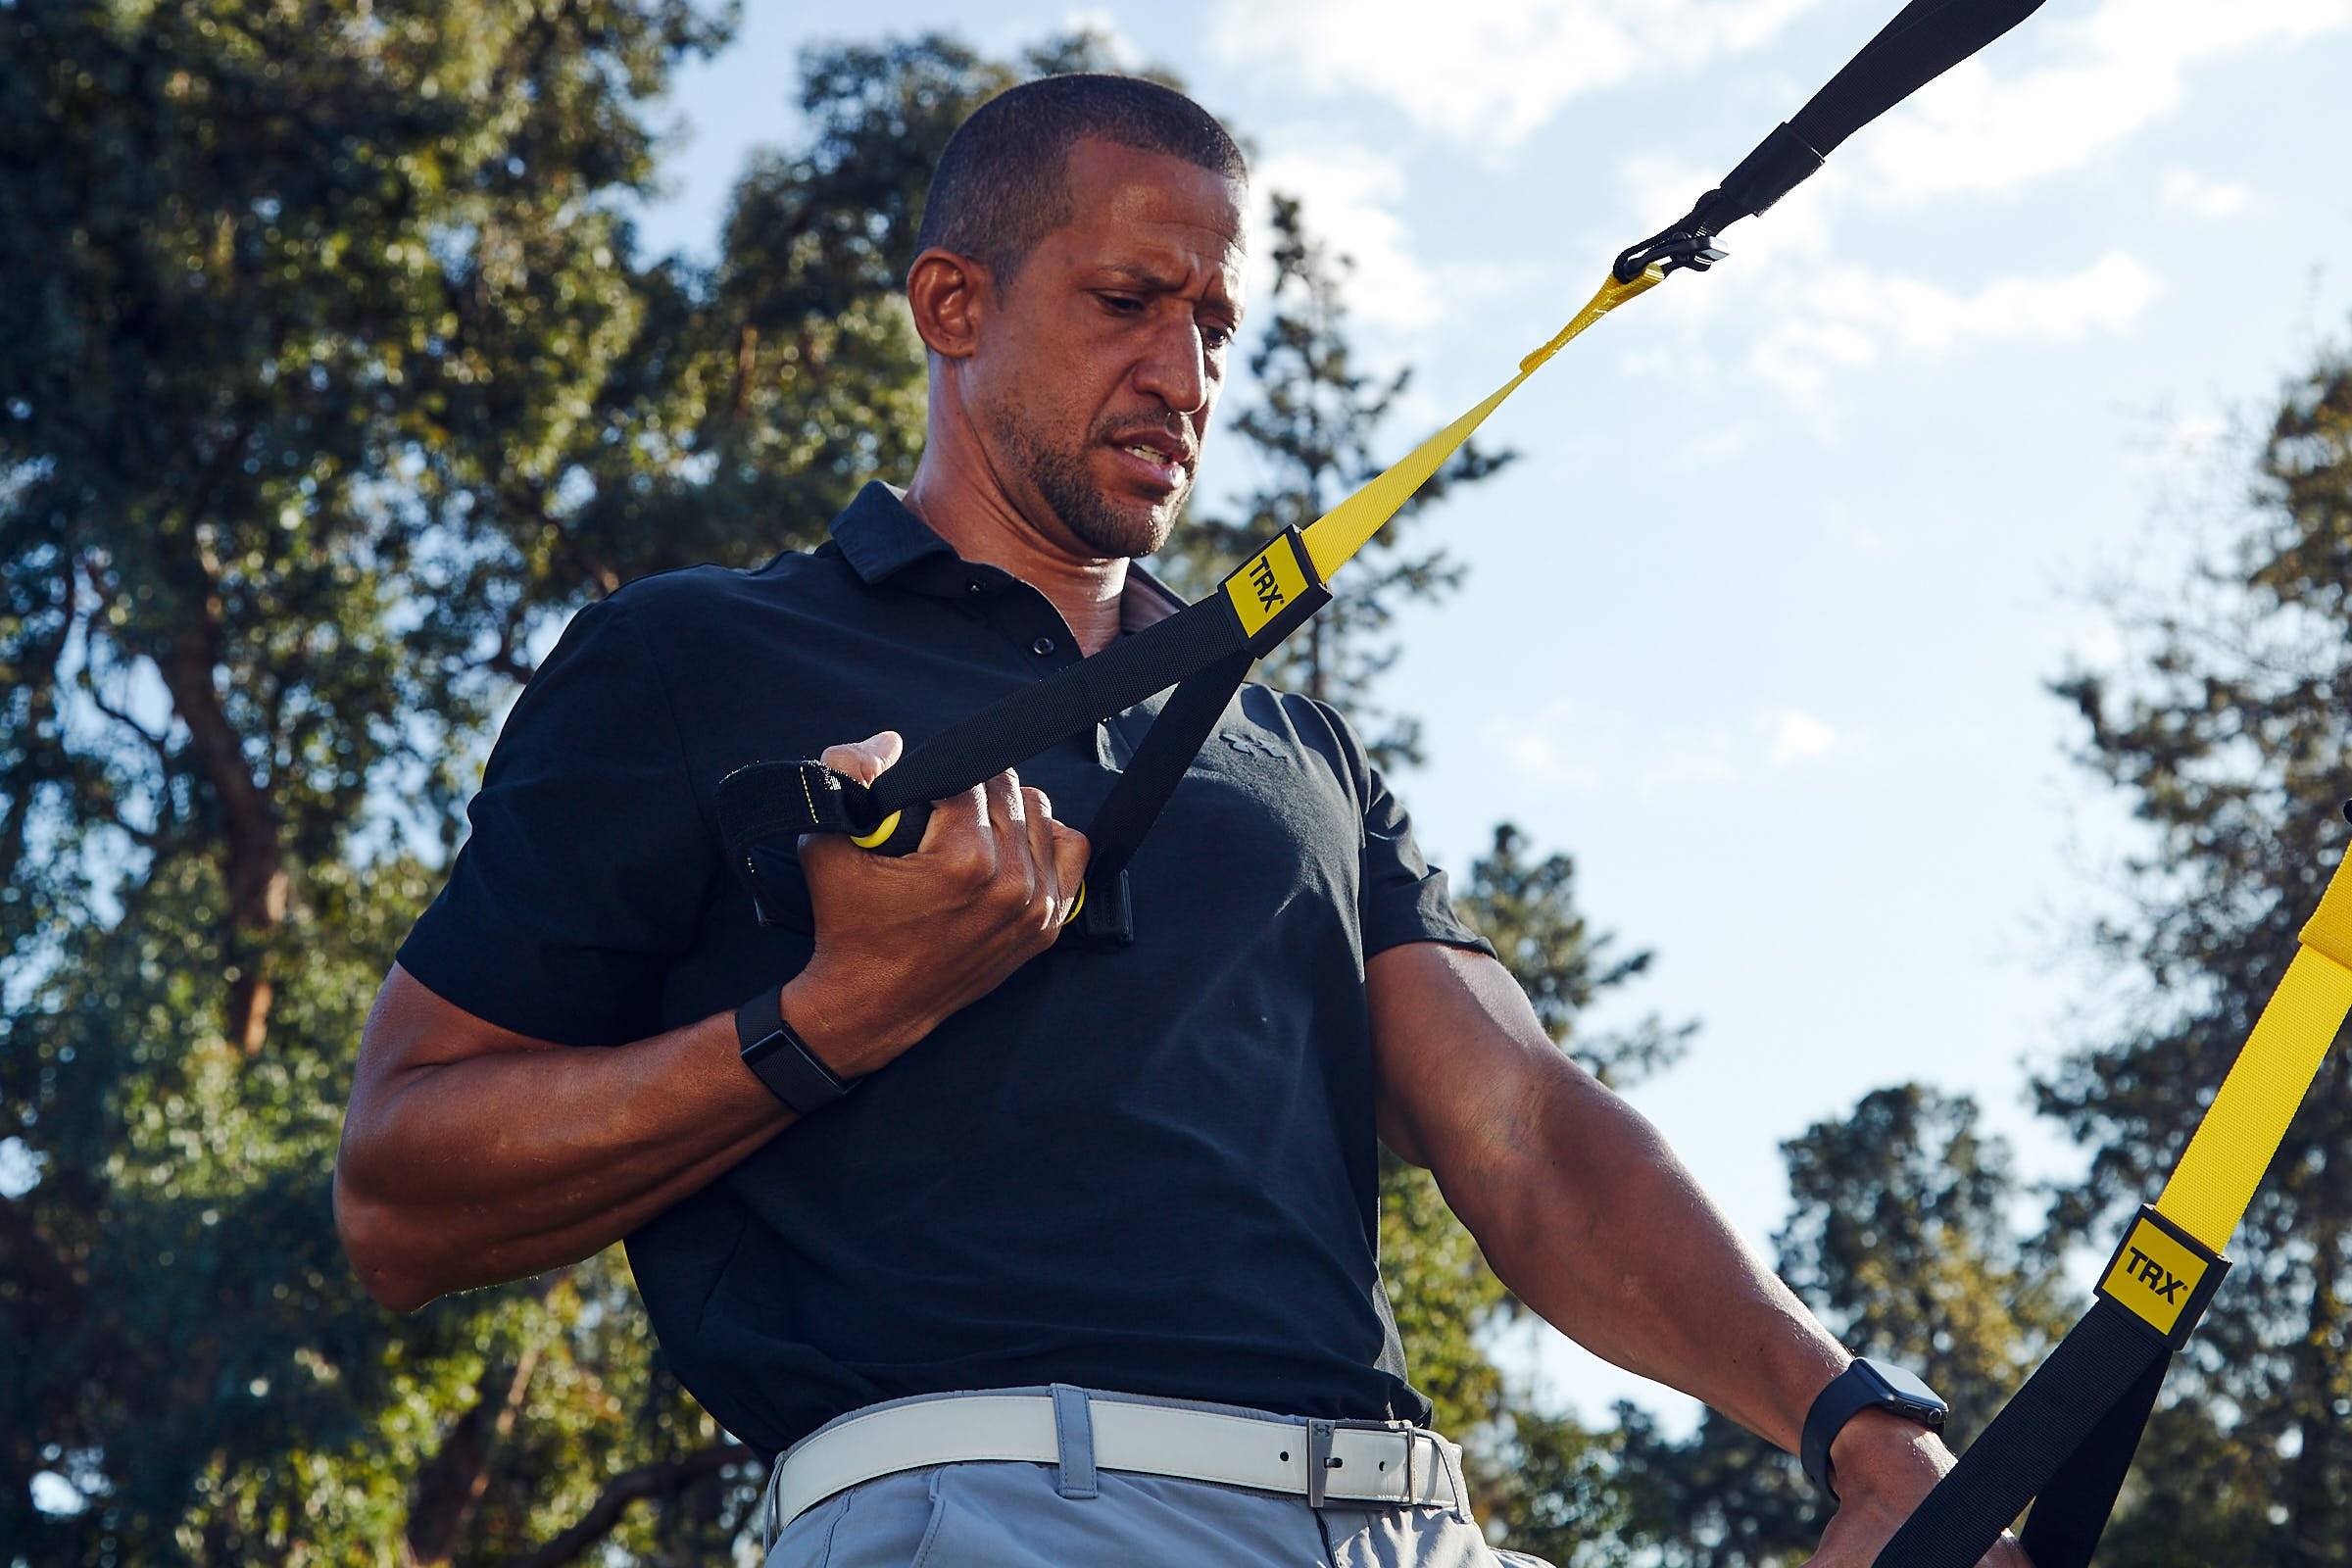 Trevor Anderson using a TRX Suspension Trainer to warm up for a golf game